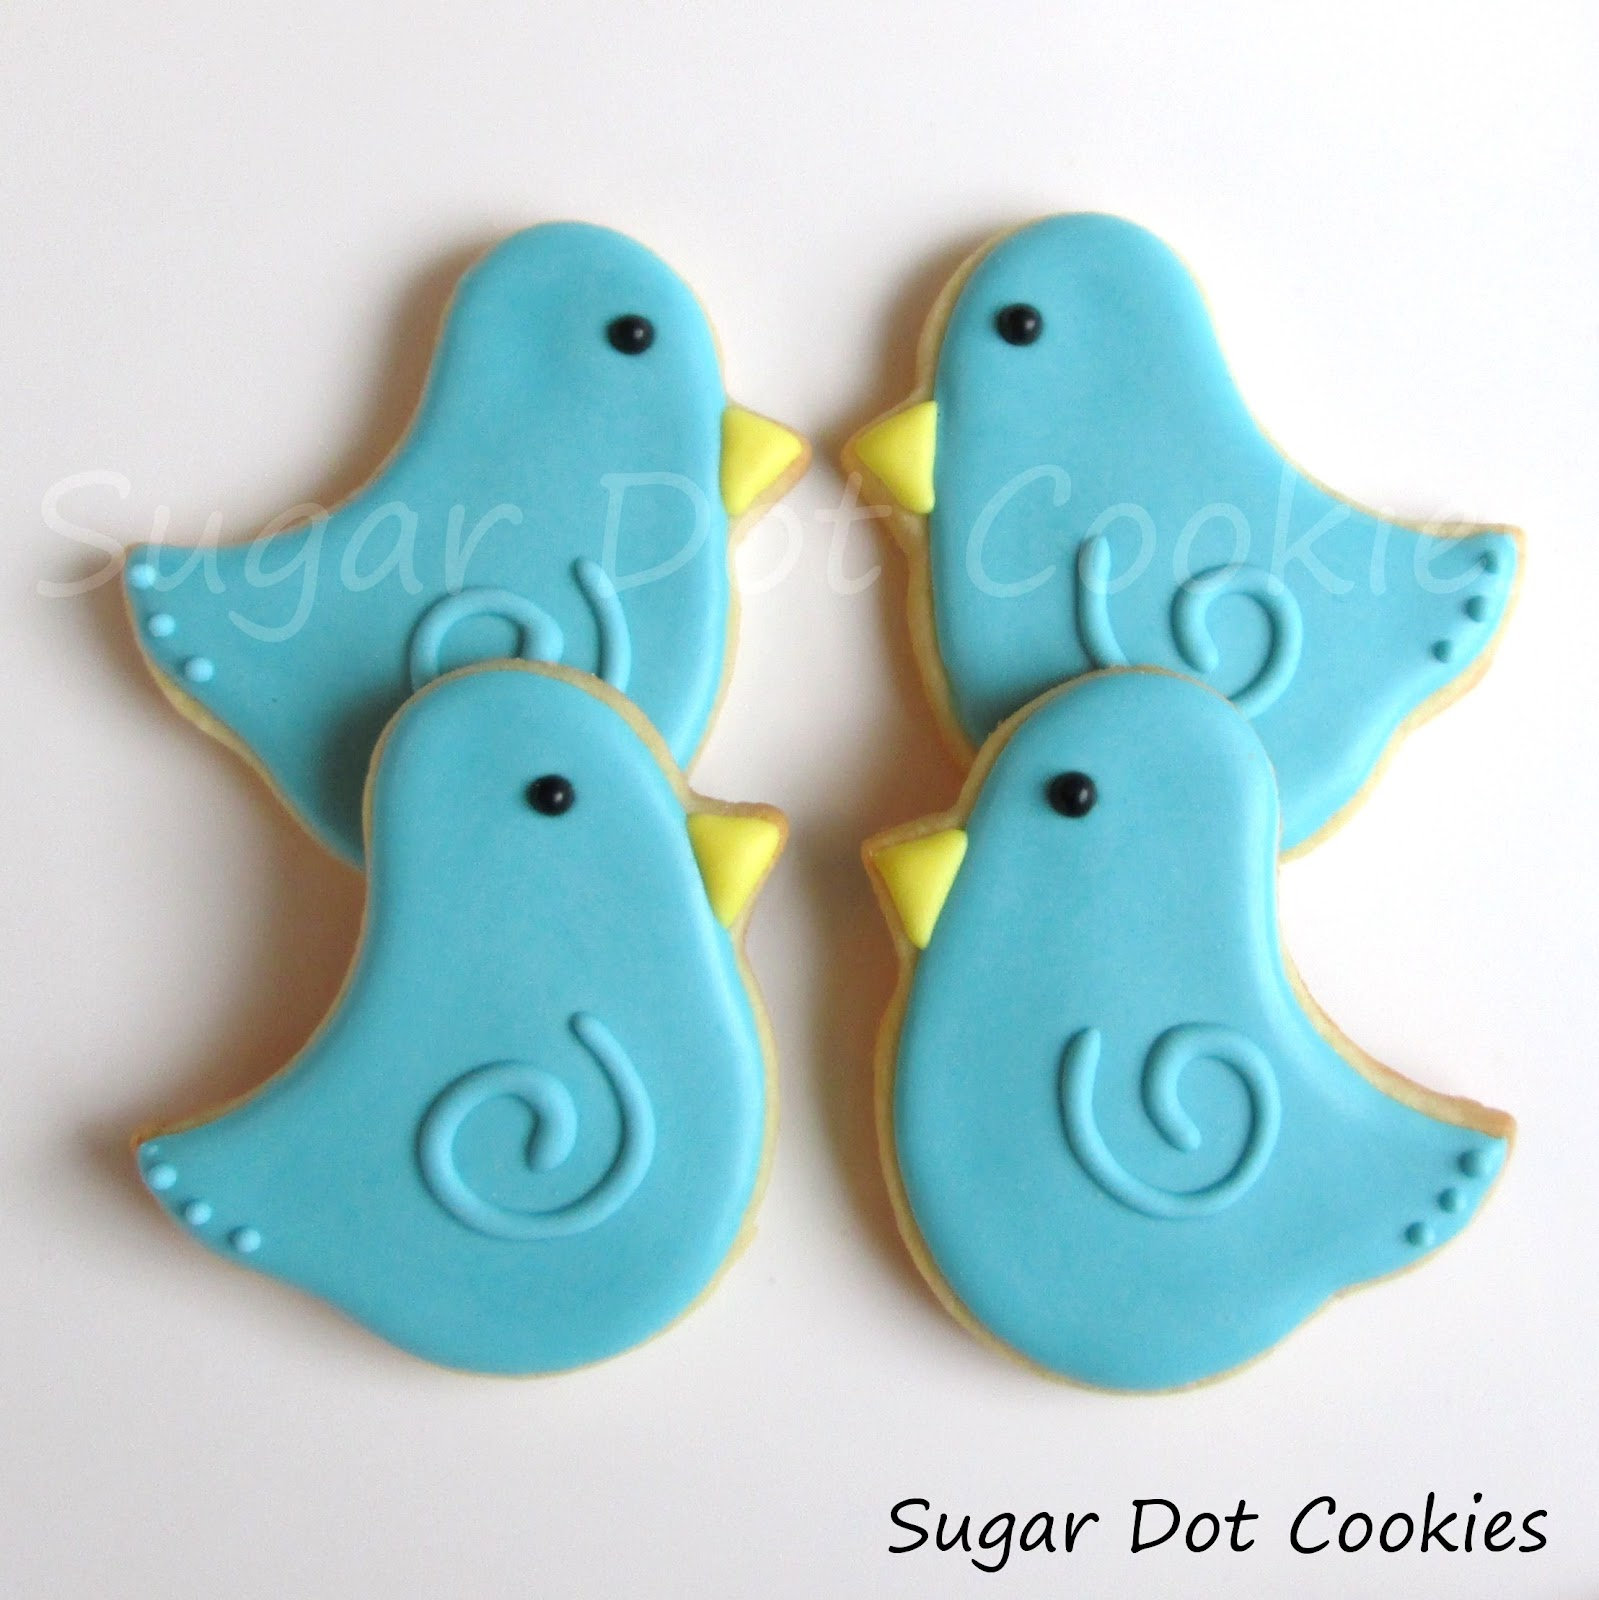 Then I had to make some bluebirds using the same cutter. Super cute!